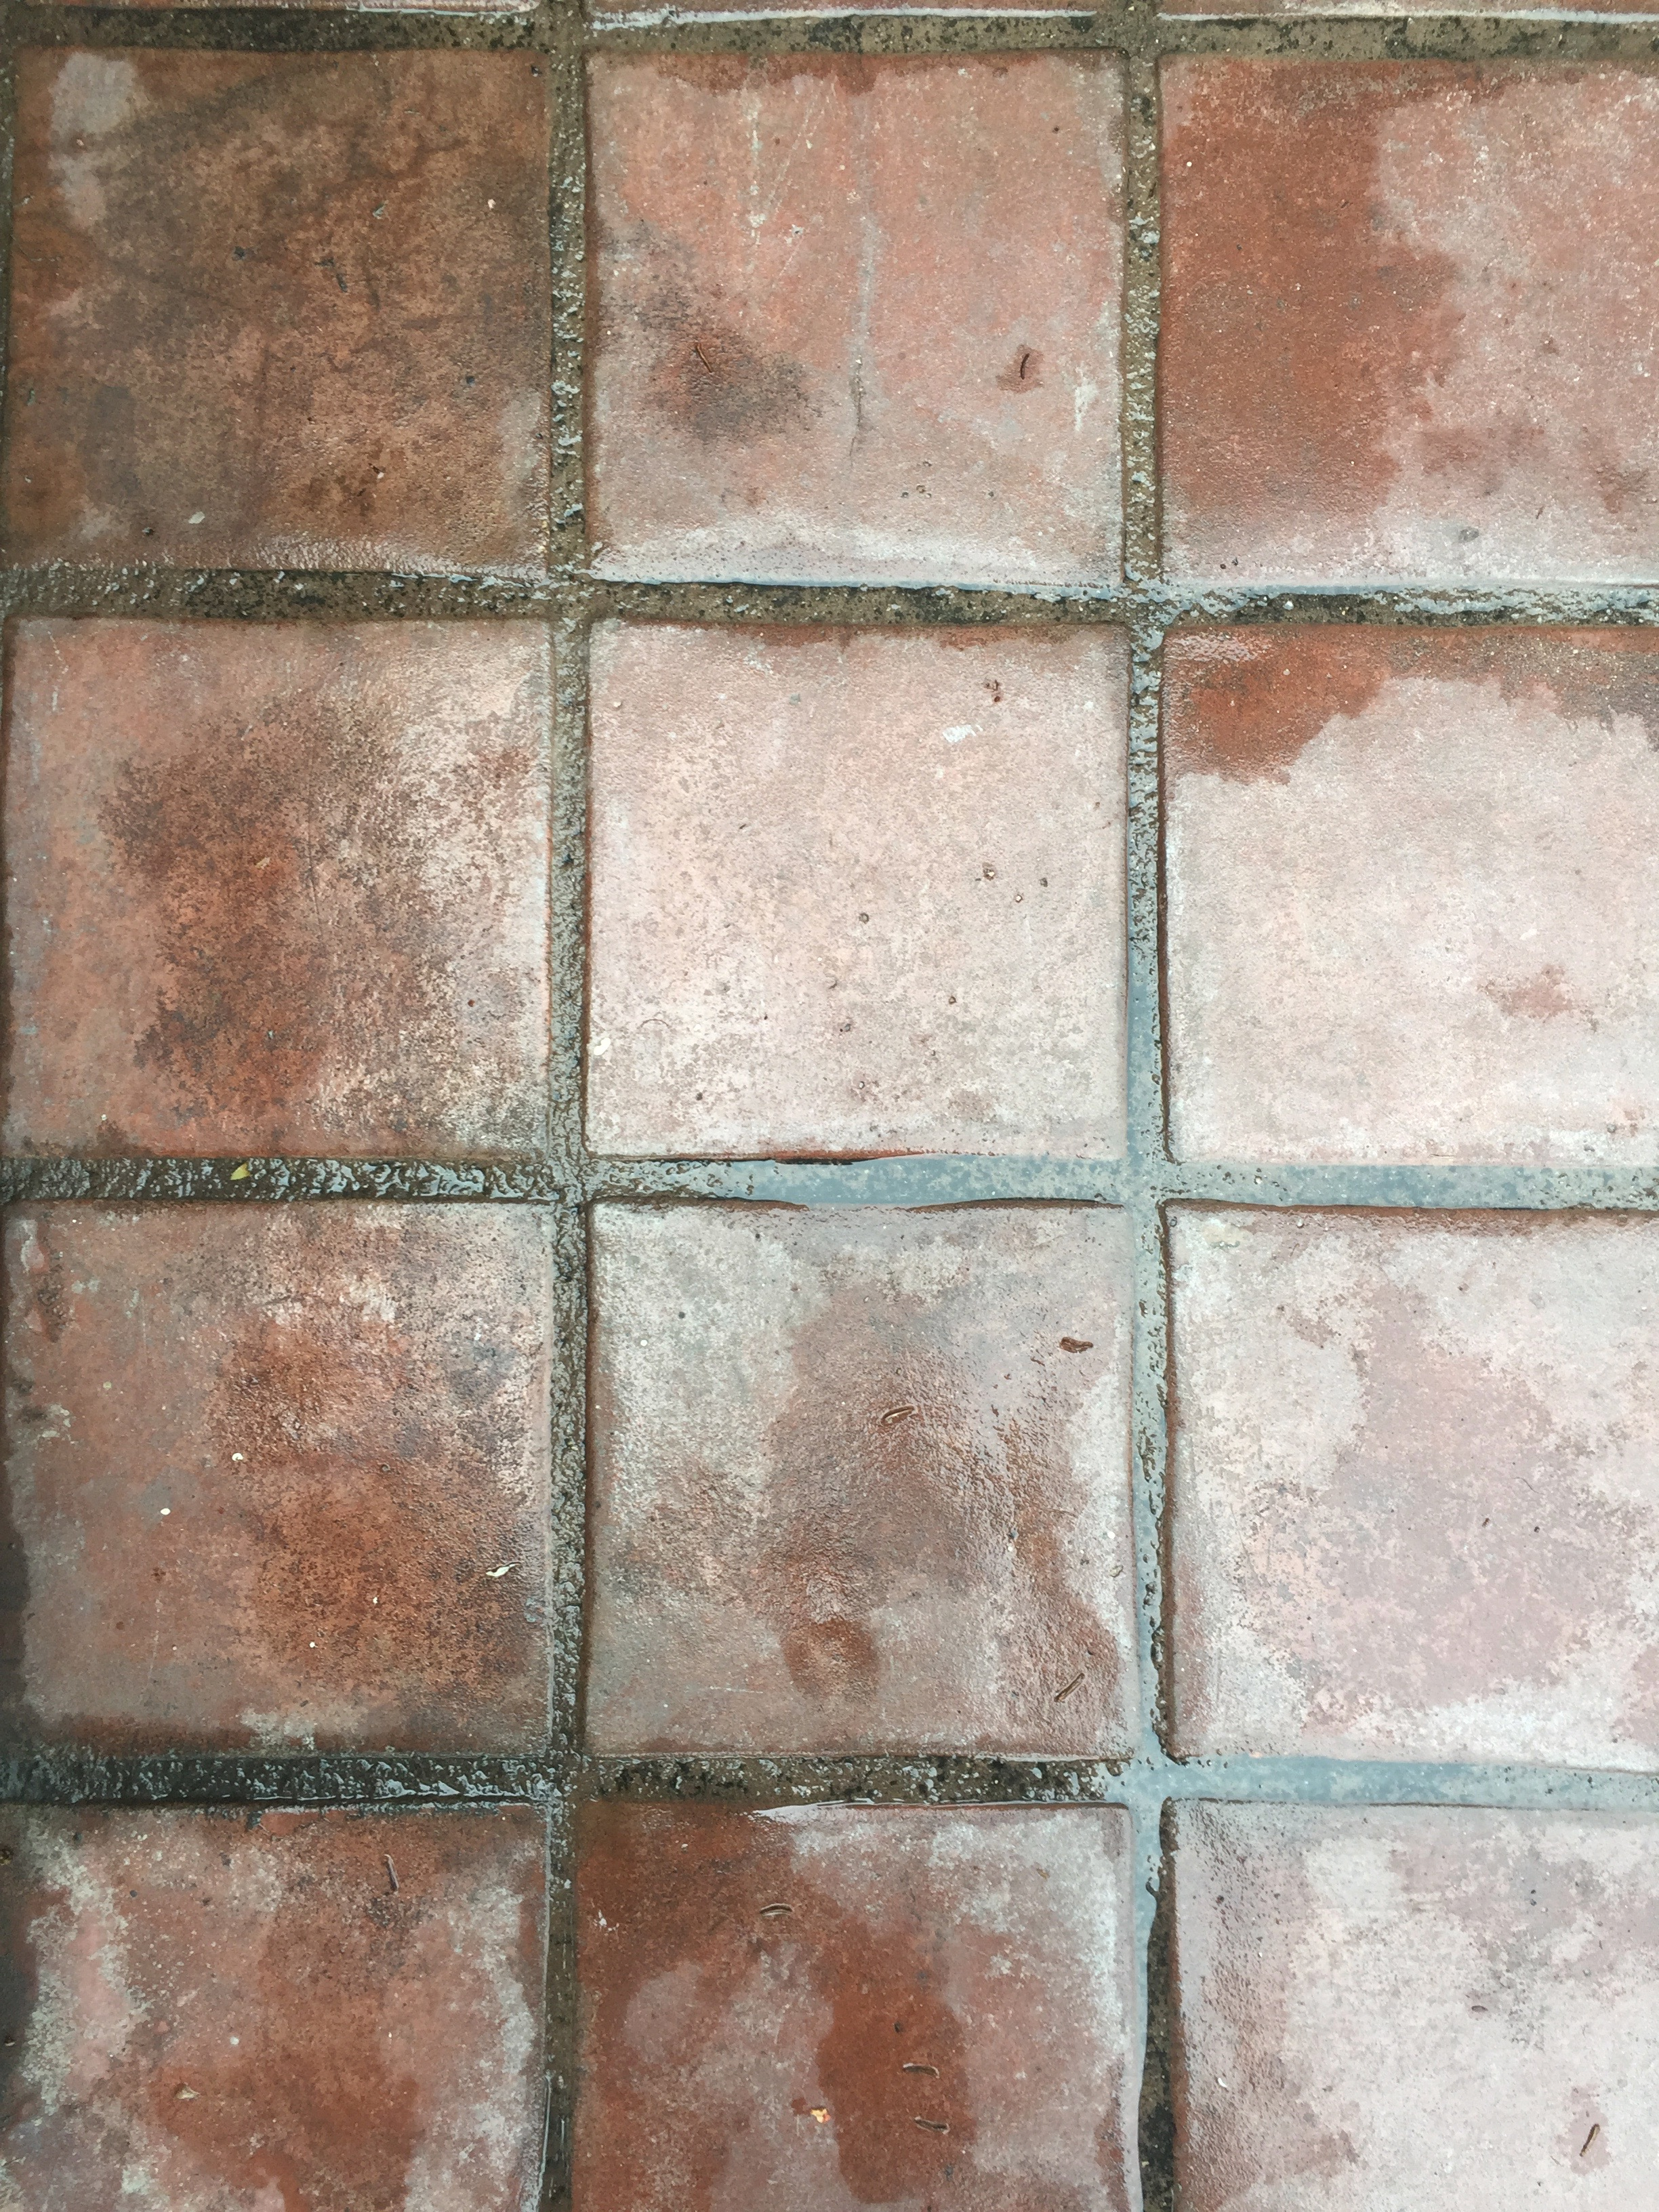 wet red spanish style tiles free stock